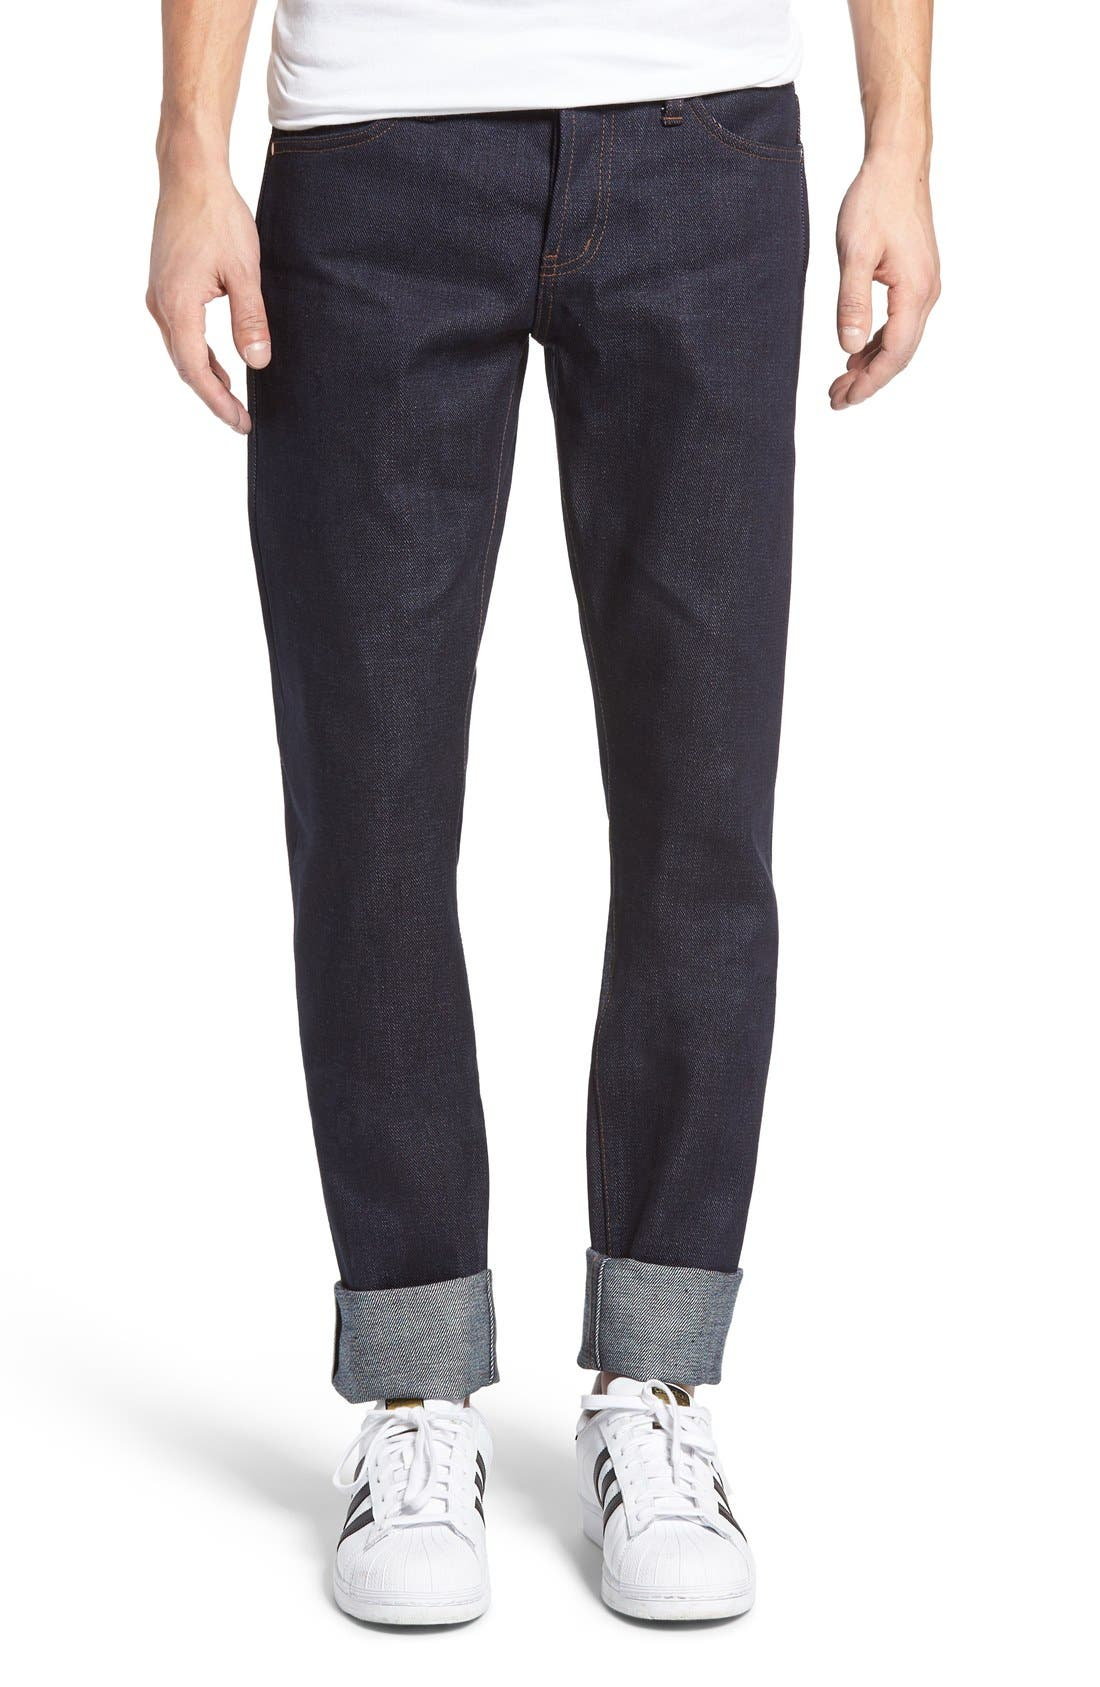 Main Image - The Unbranded Brand UB121 Selvedge Skinny Fit Jeans